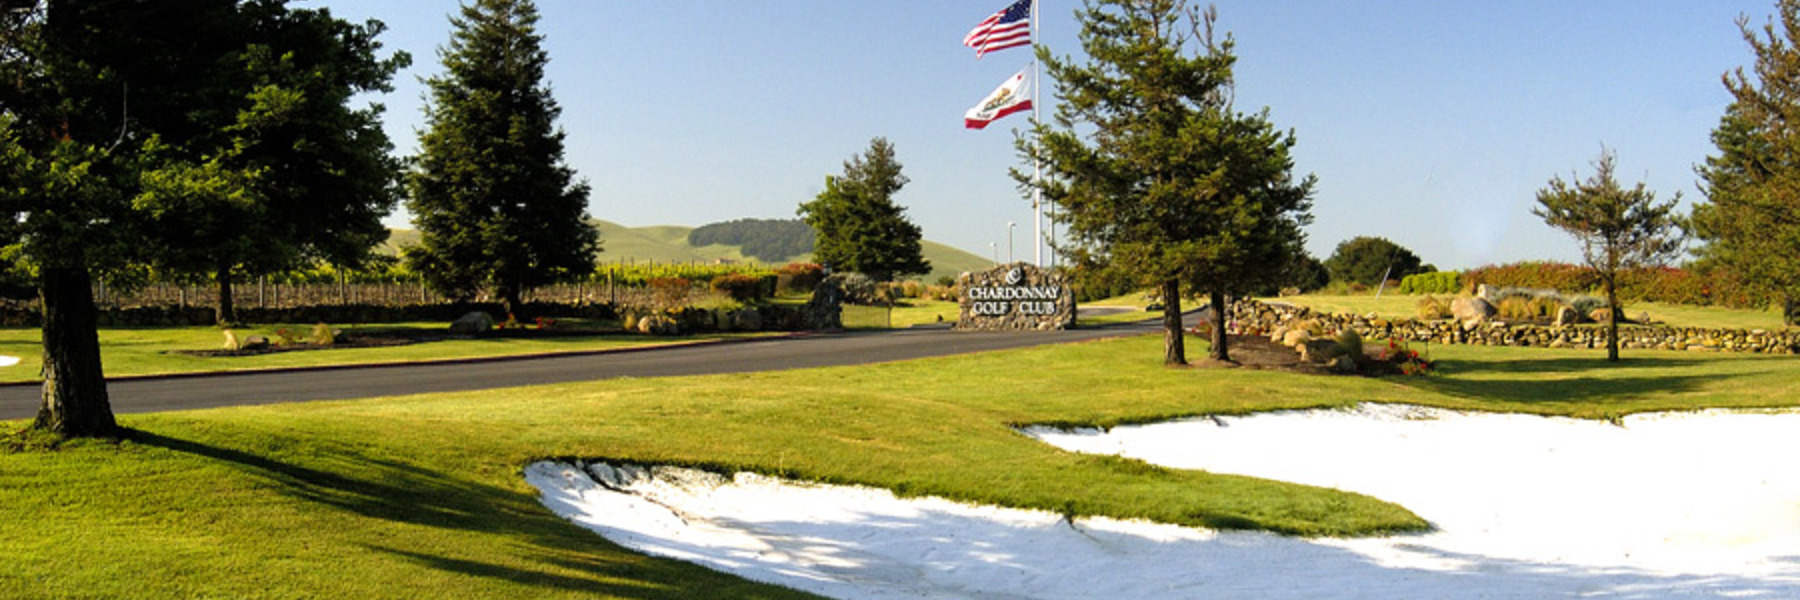 Golf Vacation Package - Chardonnay Golf Club